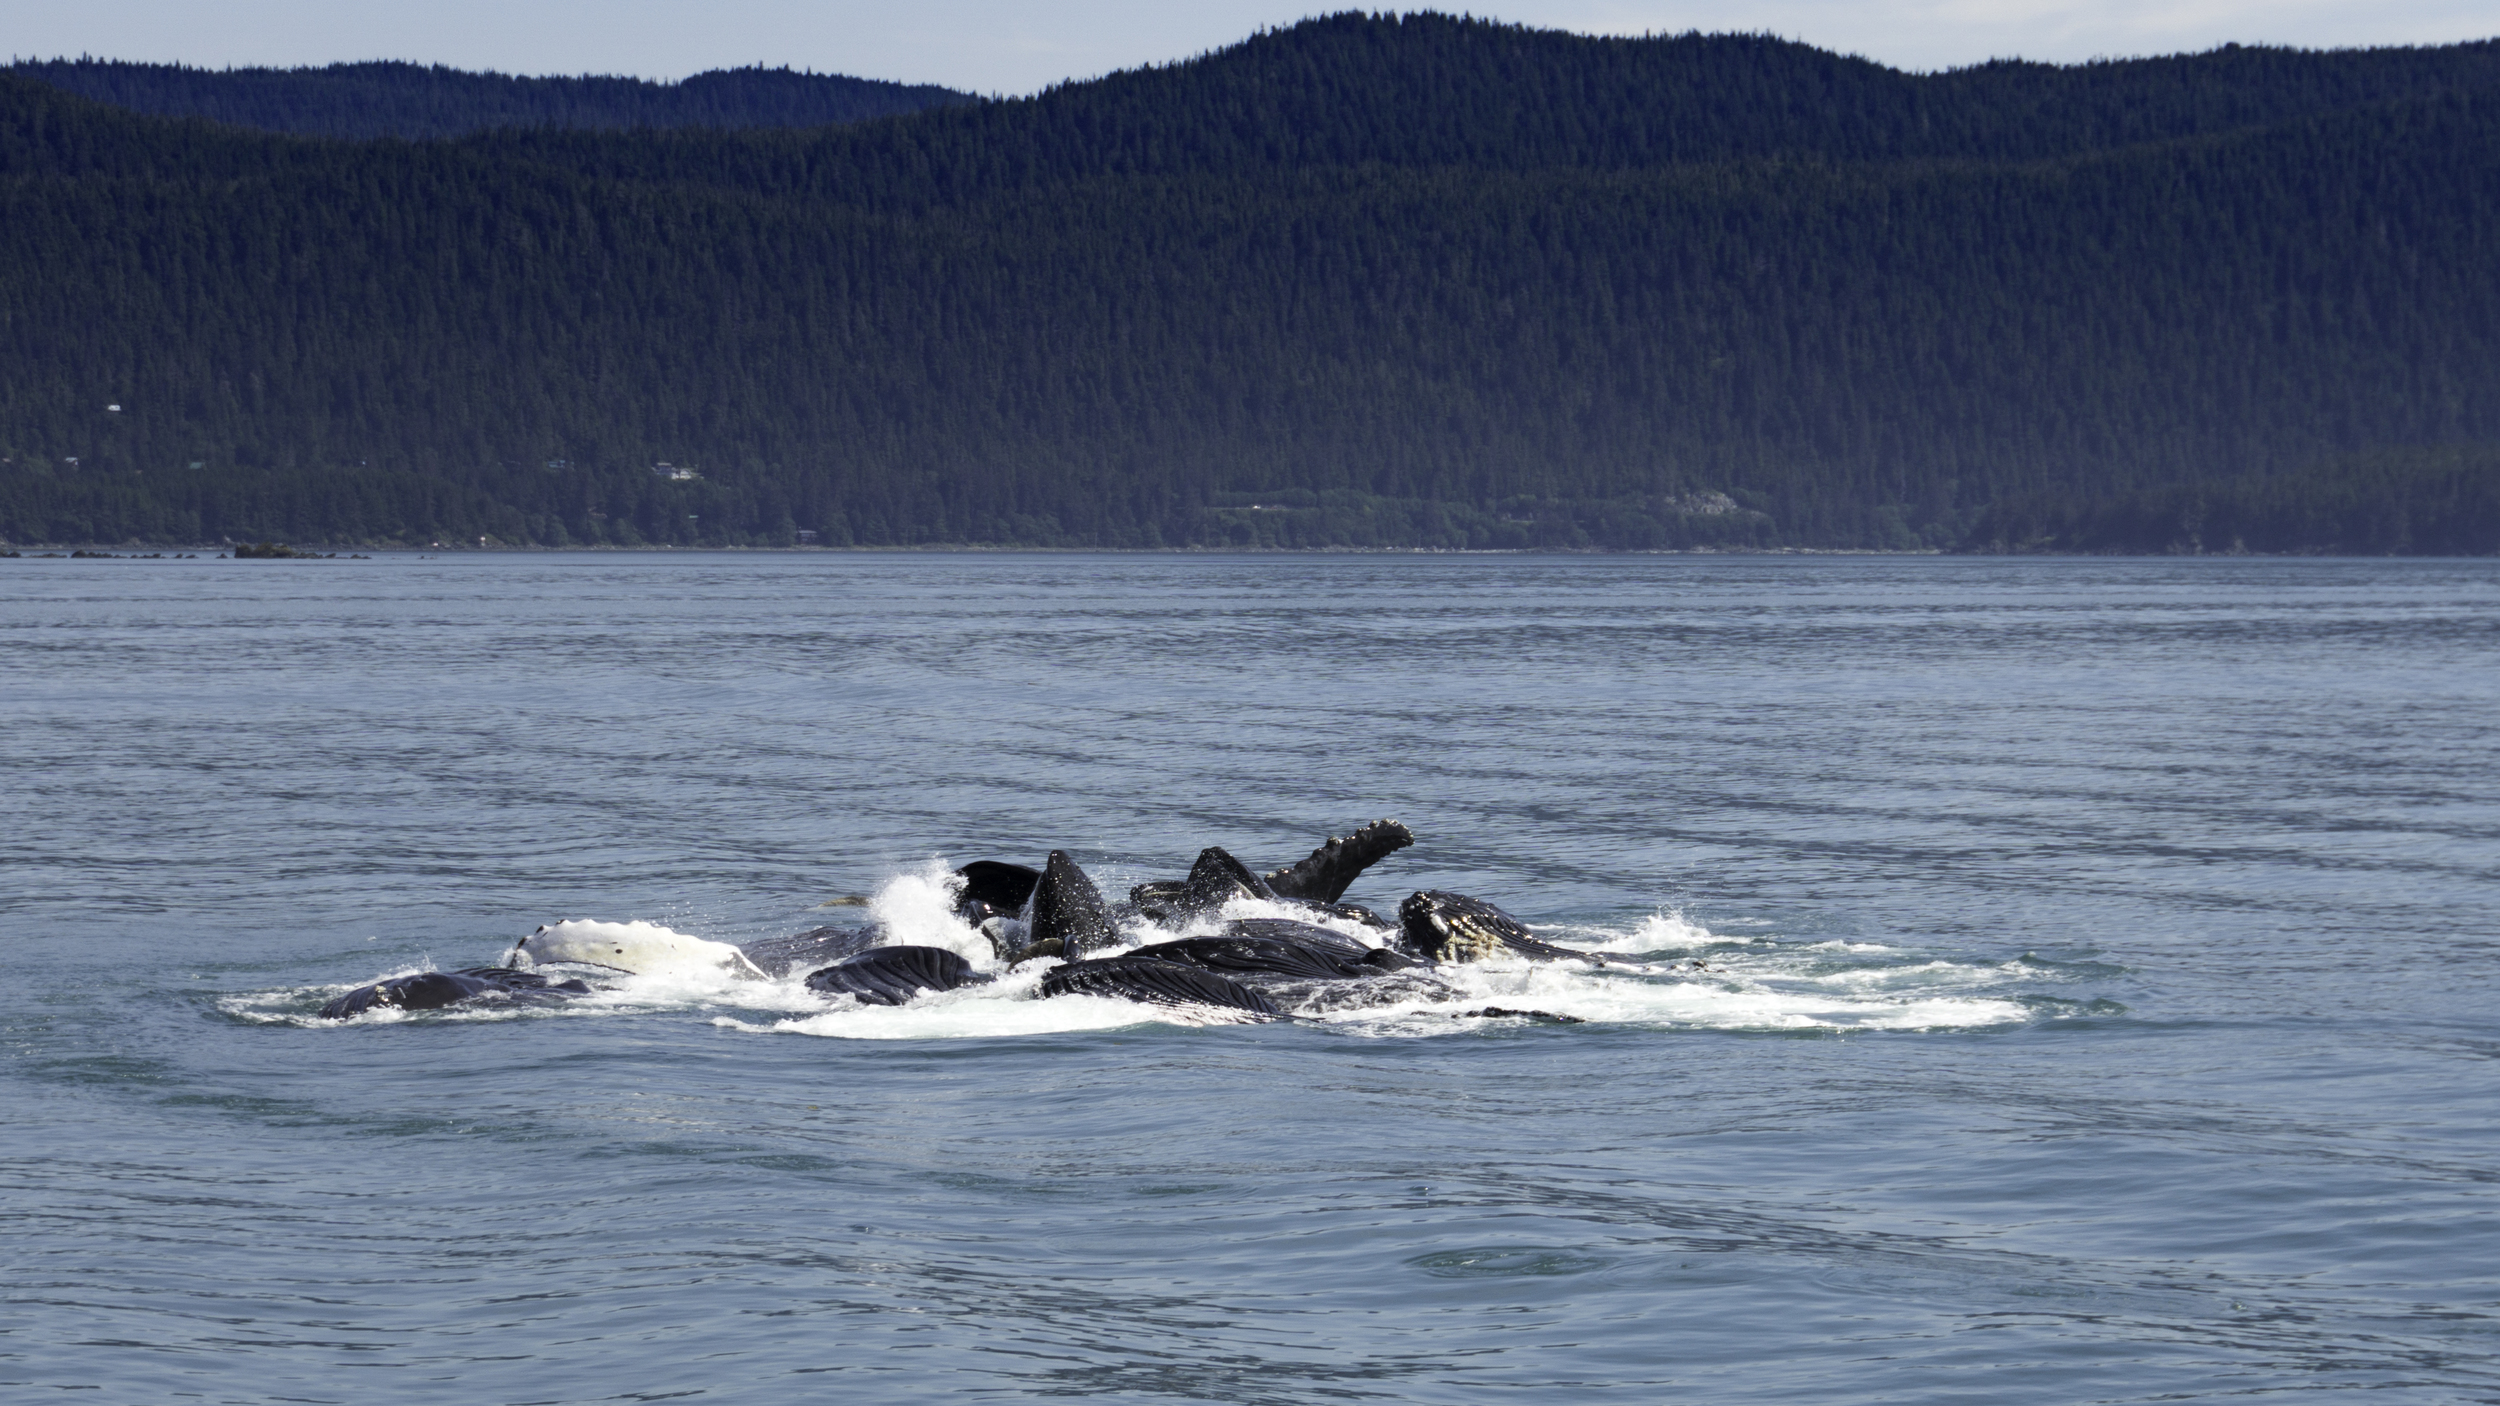 These Humpback whales are bubble net feeding. #humpback #whales #alaska